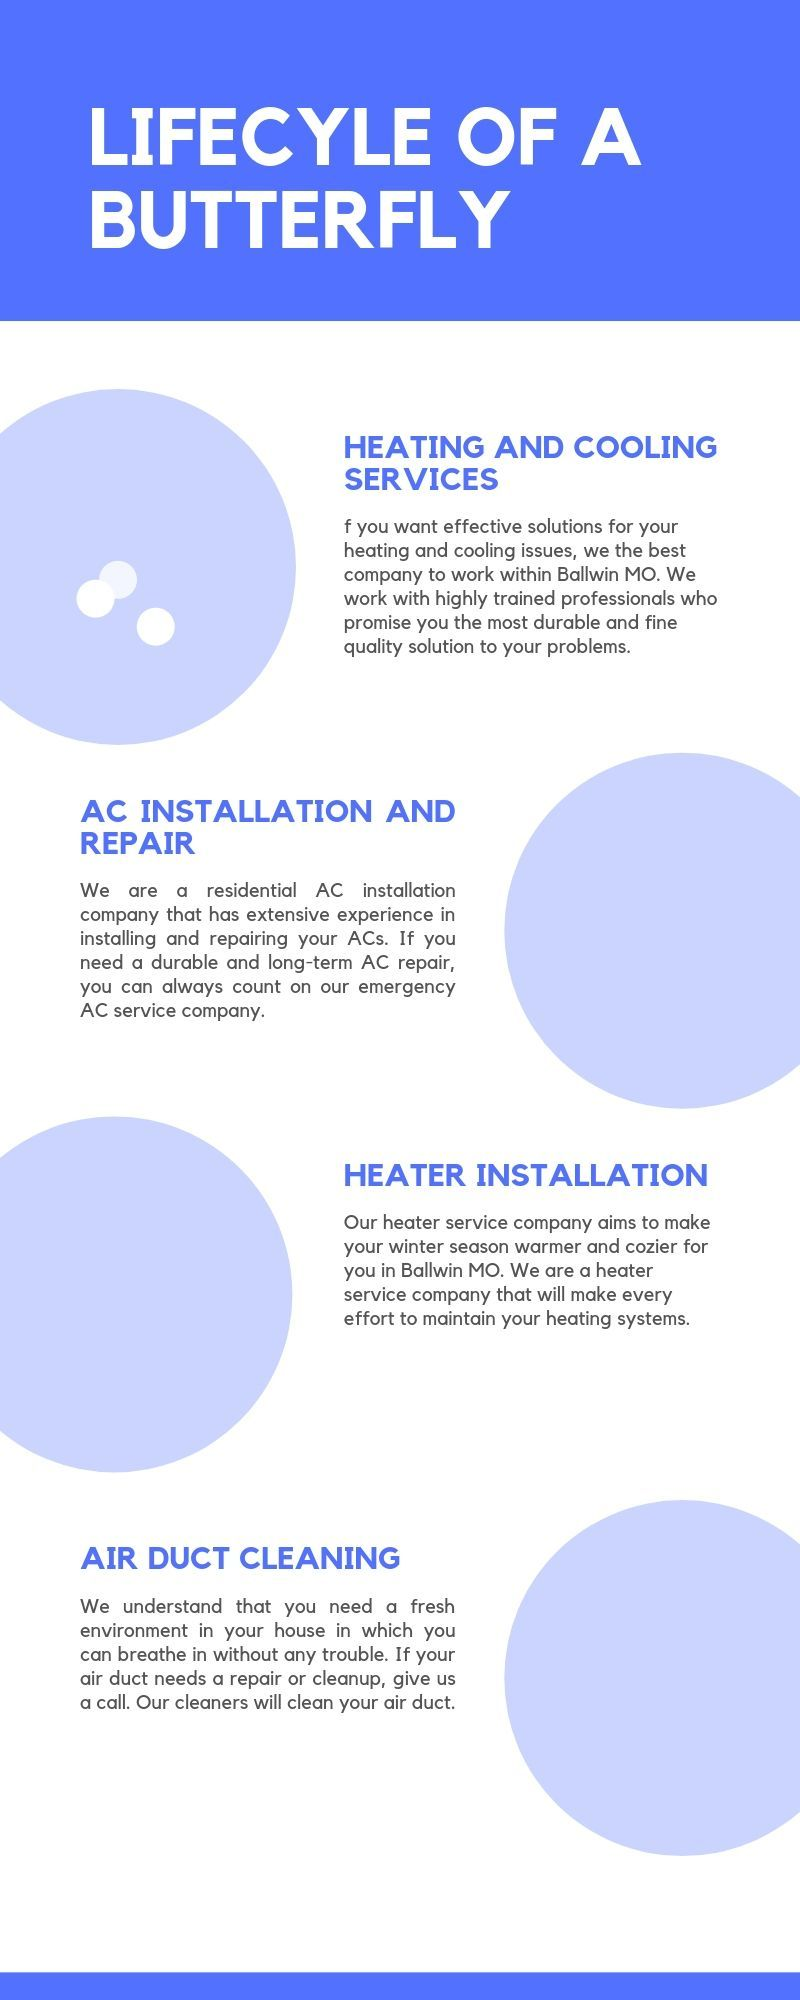 Fenton Heating And Air Conditioning Has Been Serving Successfully